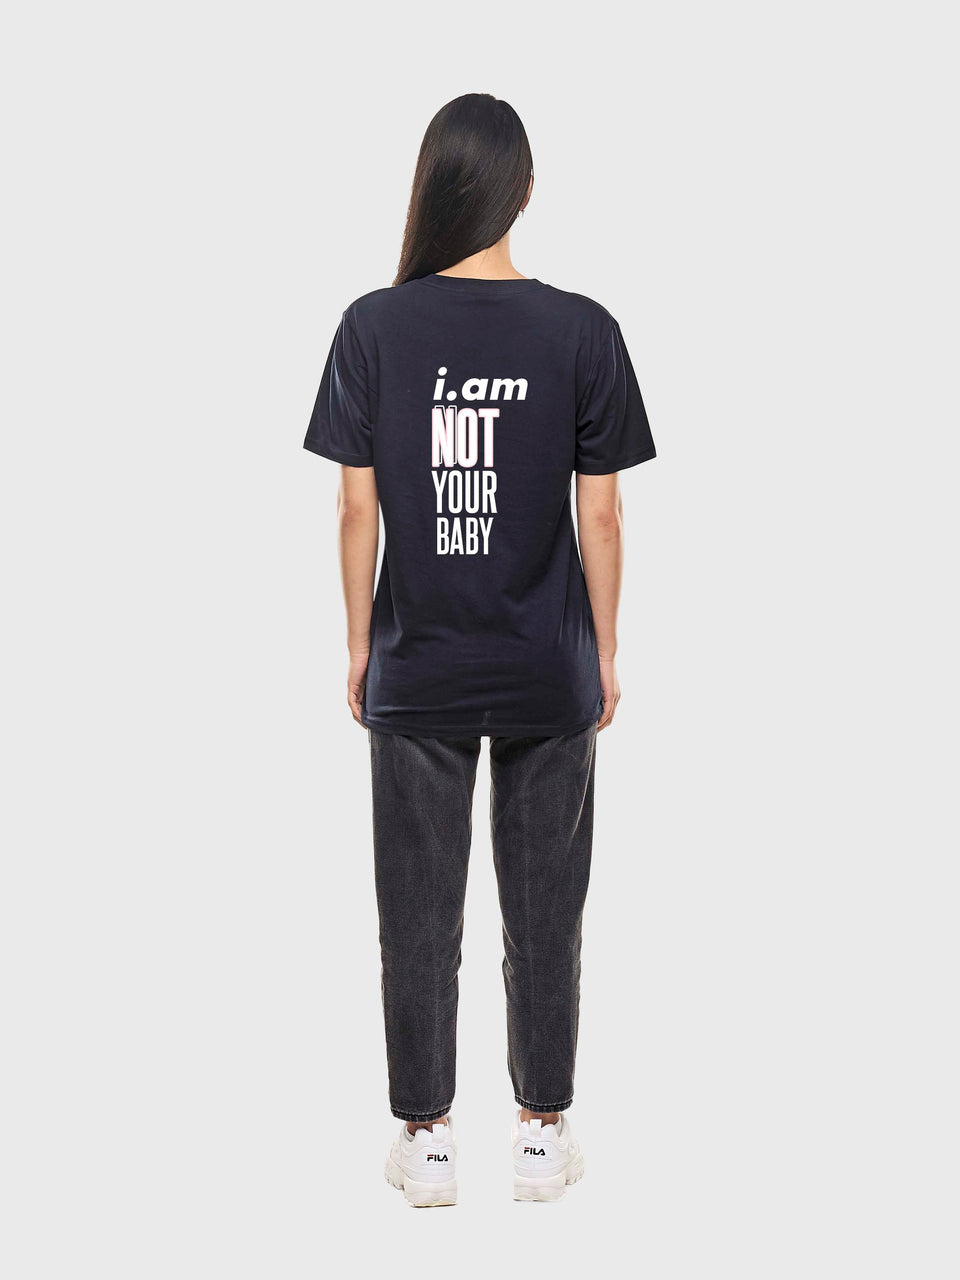 Not Your Baby - Navy - Unisex T